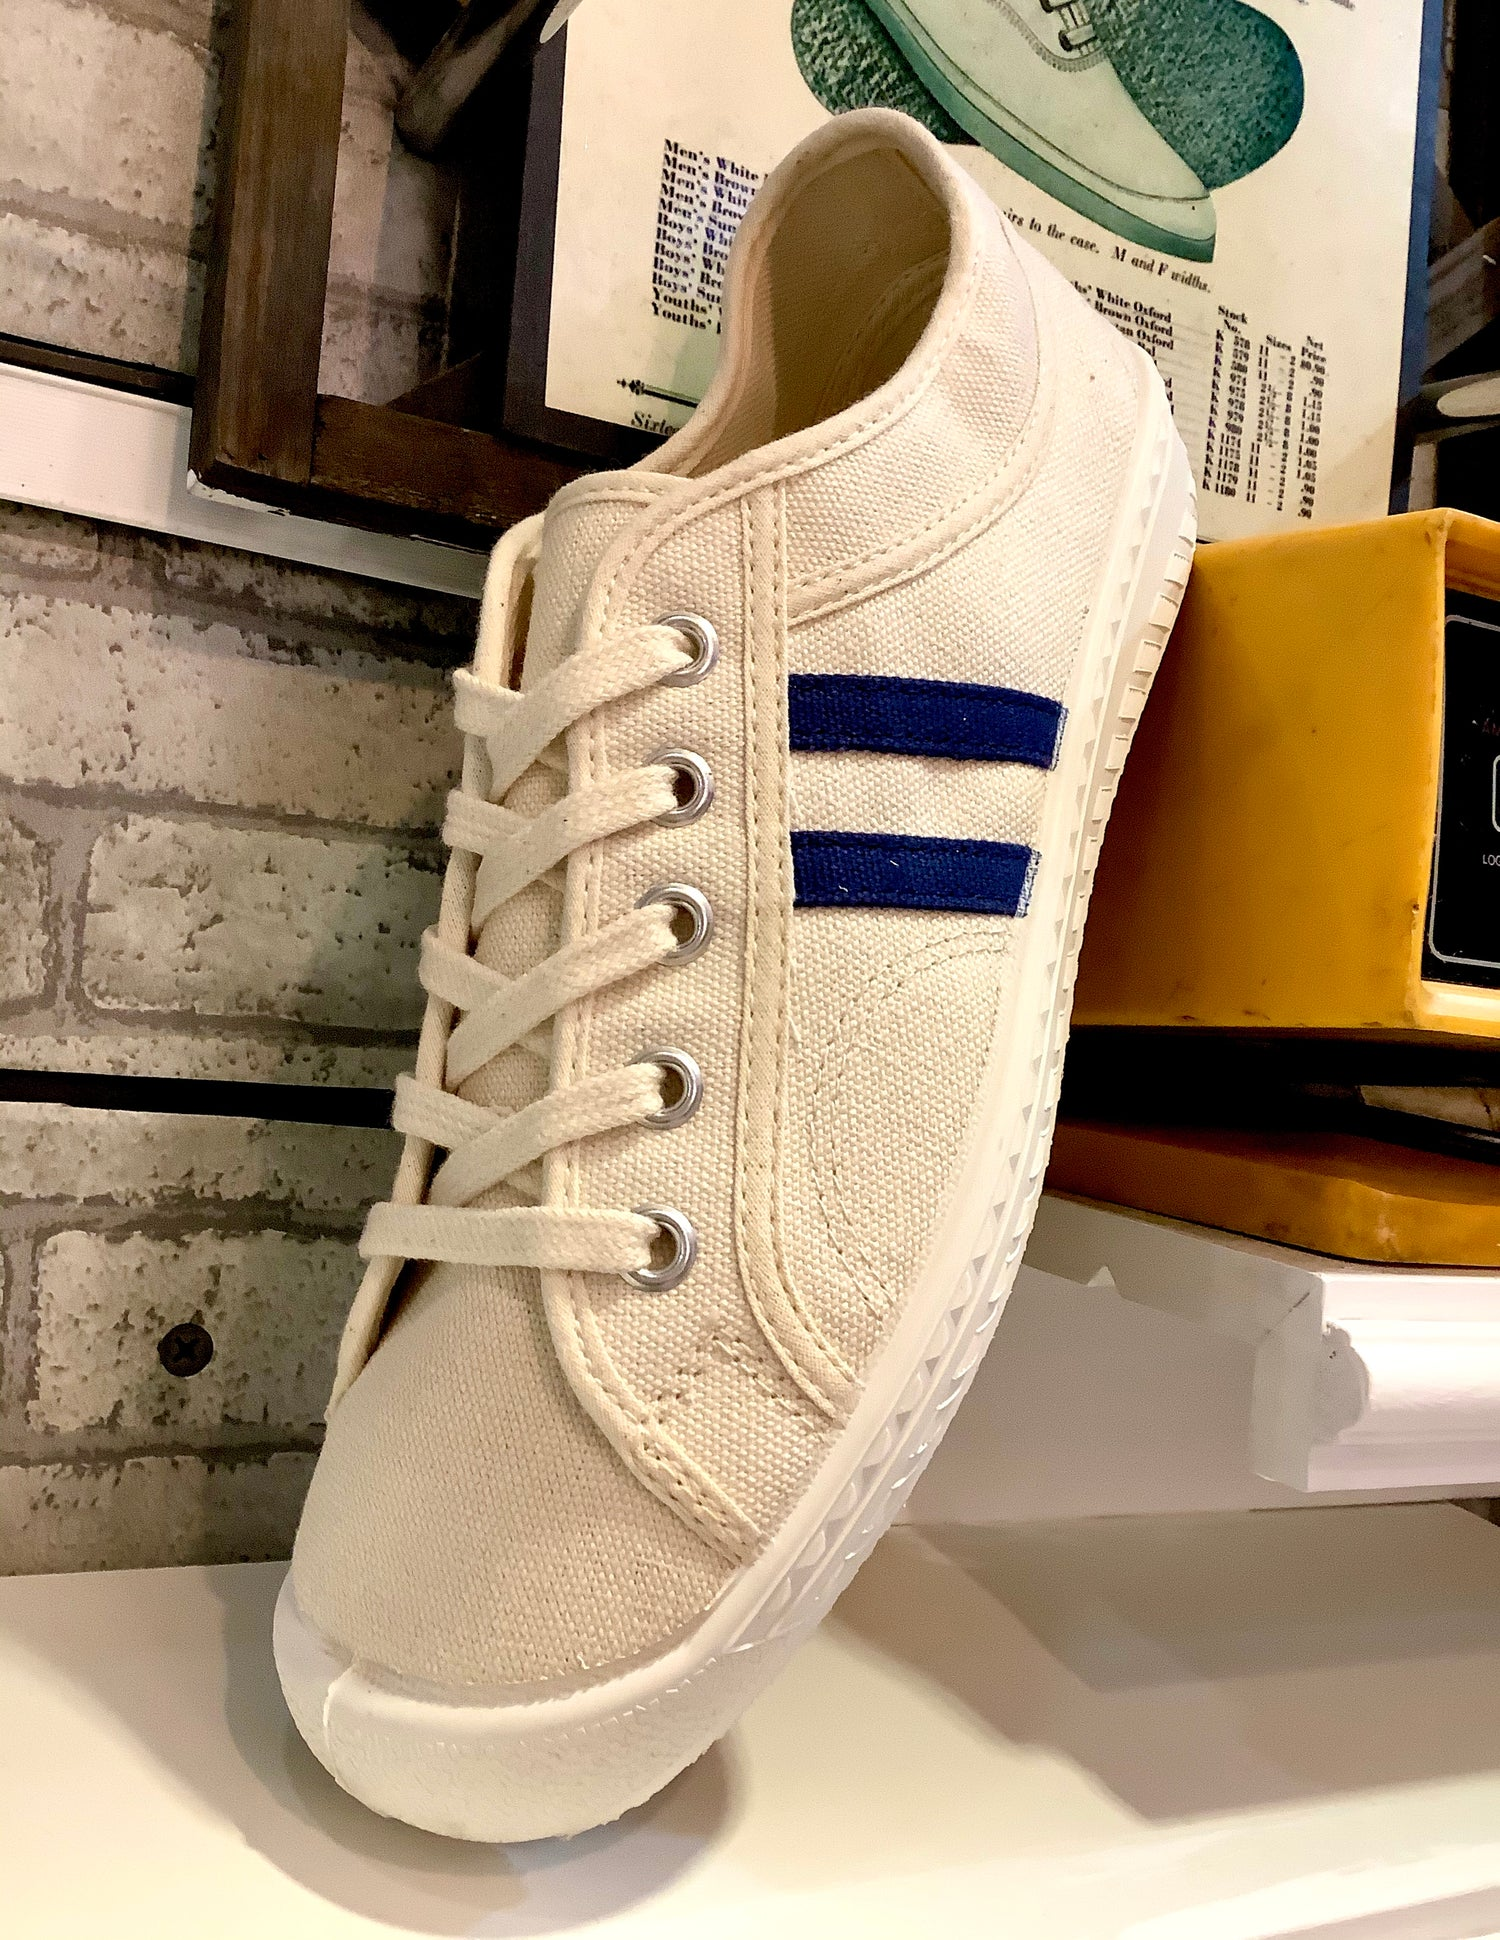 Image of Inn-stant classic lo top natural canvas sneaker shoes made in Slovakia